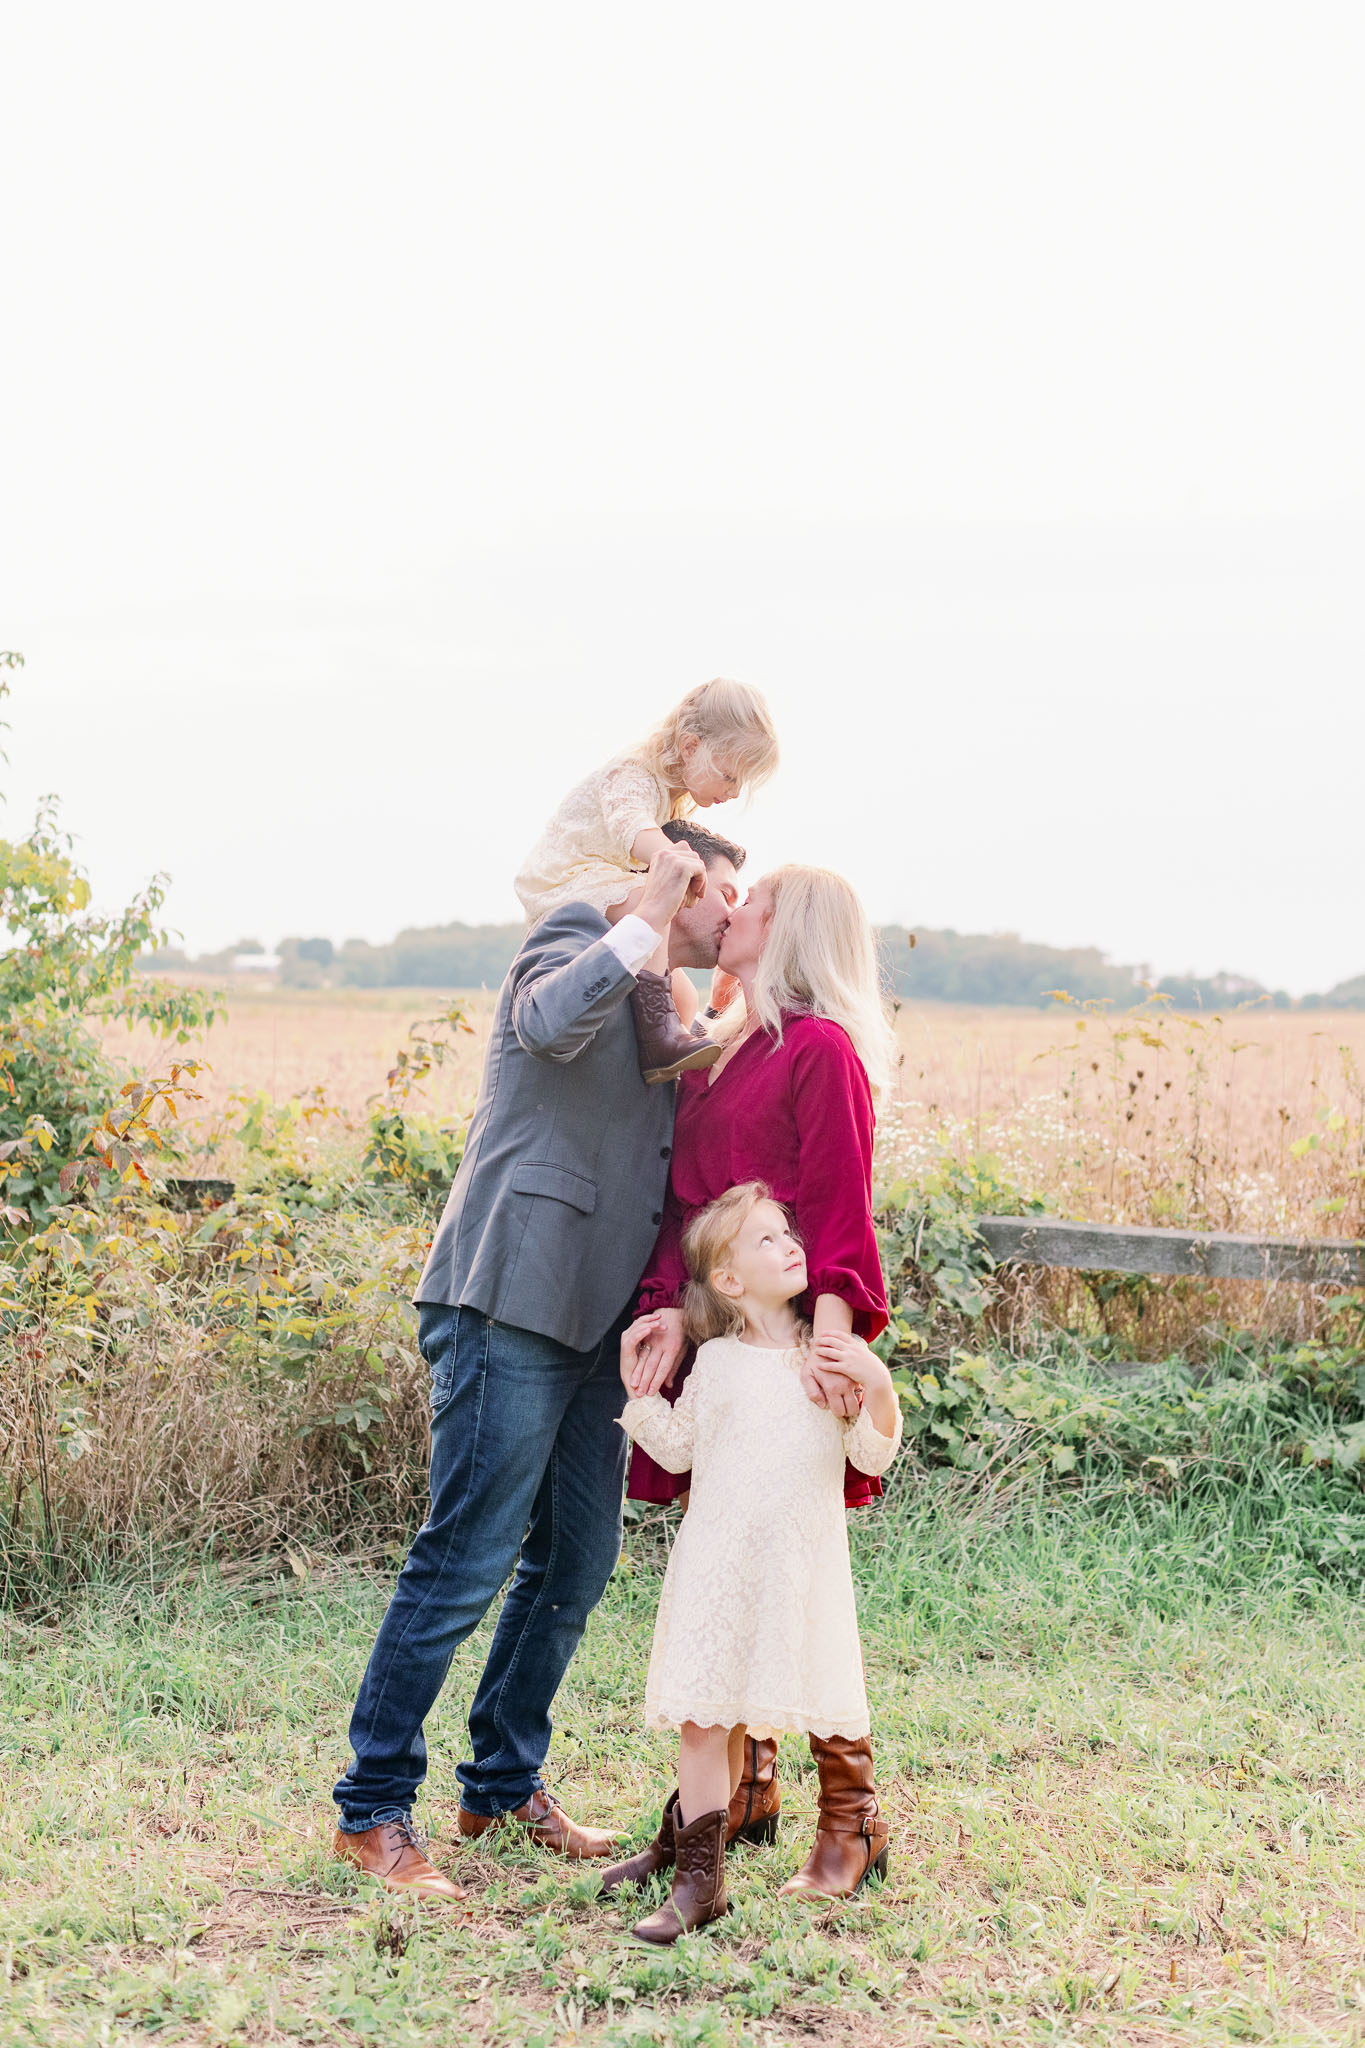 Chicago Lifestyle Family Photographer – St Charles Fall Family Photos-34